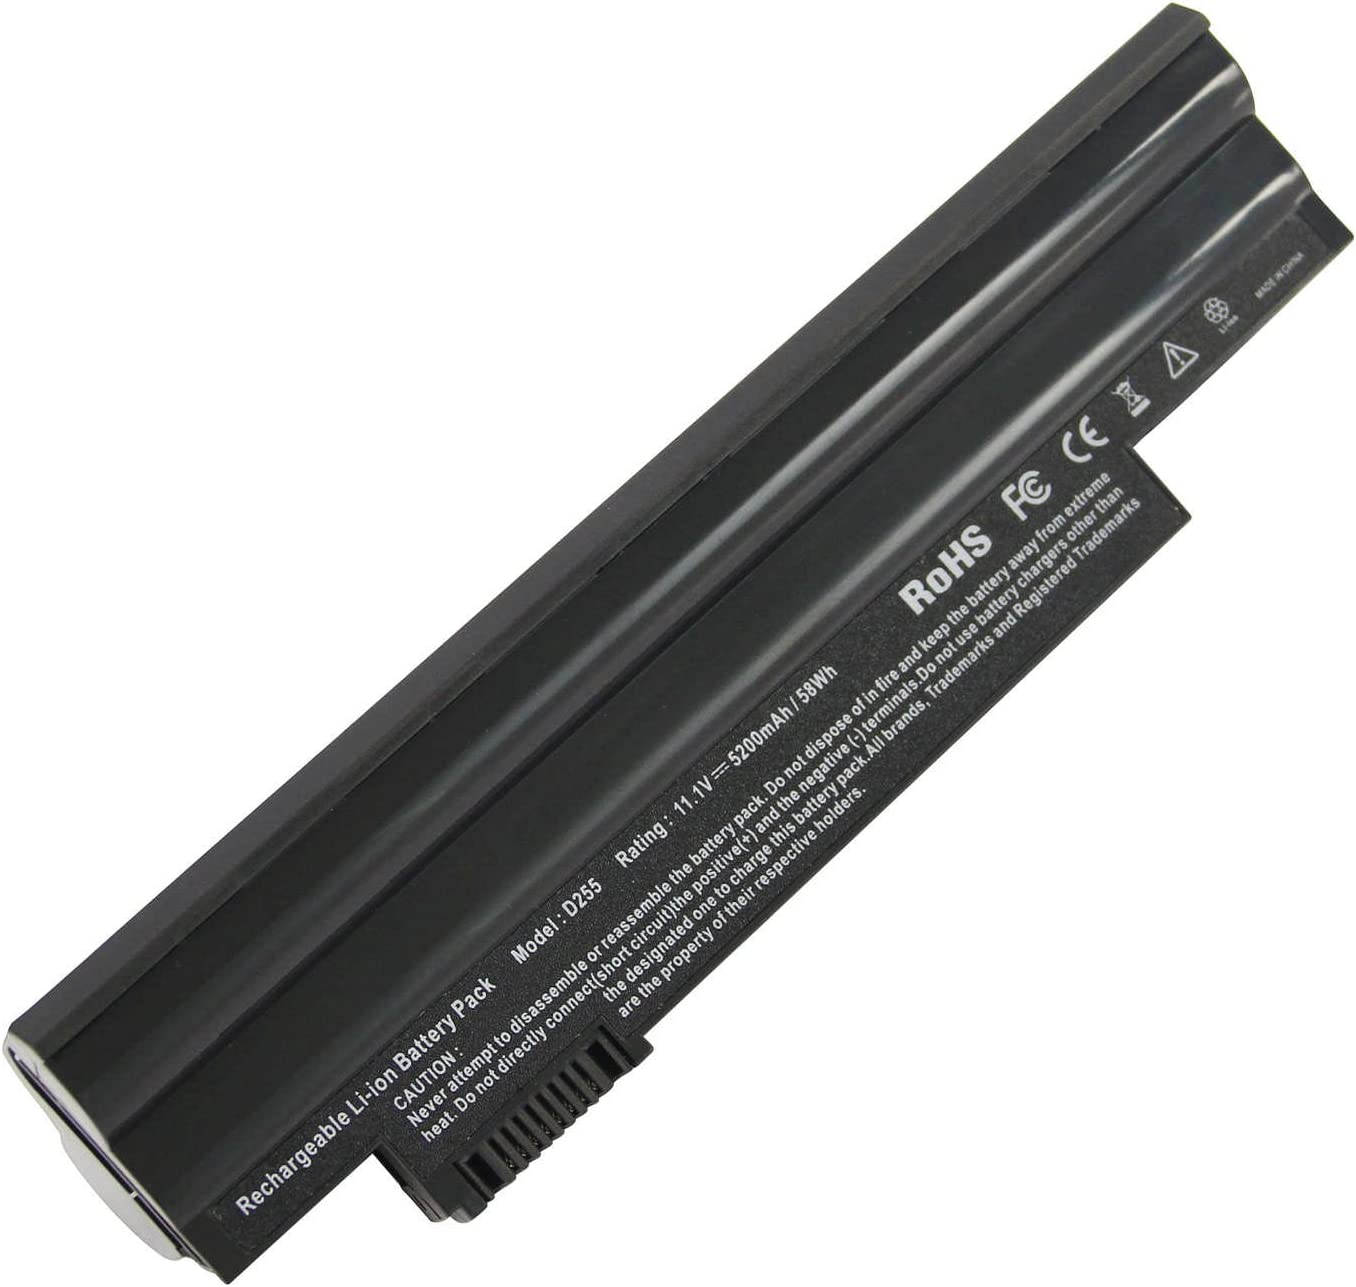 Fancy Buying Performance Laptop Battery Replacement for Acer Aspire One D255 D257 D260 522 722 Al10a31 Al10b31 Al10bw Al10g31 Bt.00603.121 Lc.btp00 Notebook Battery (6 Cells 11.1V 5200mAh)